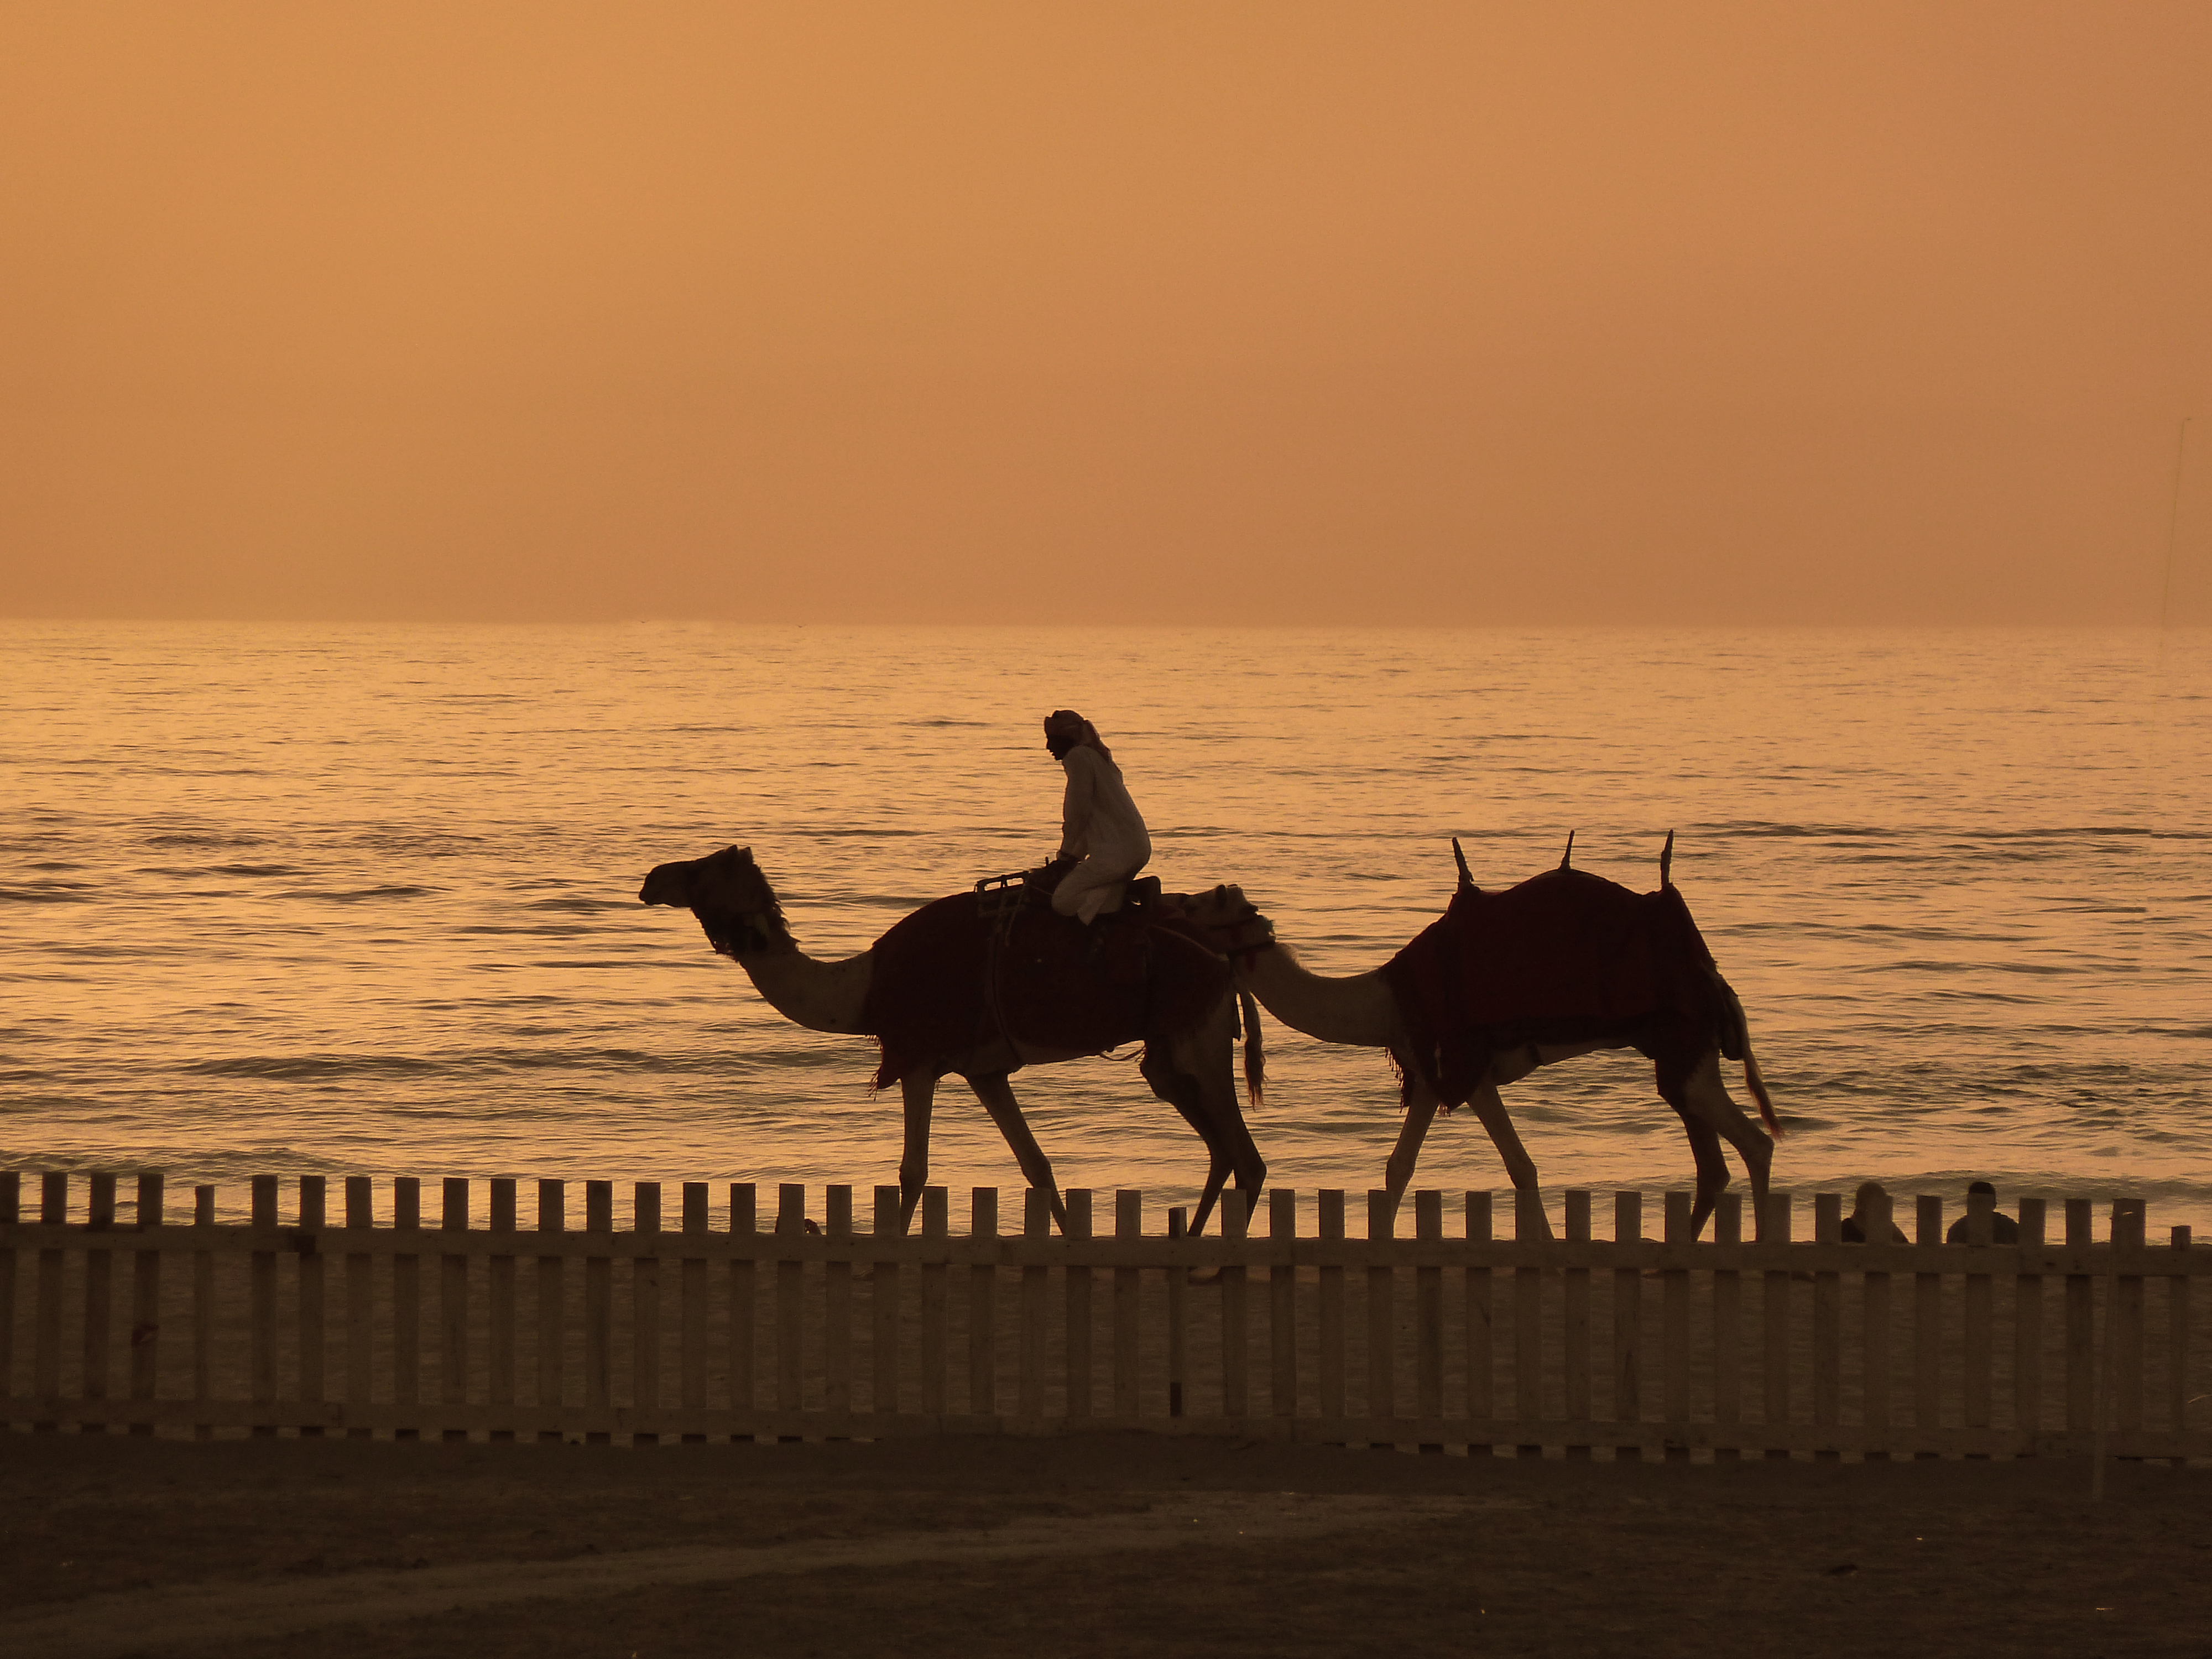 Camels at Sunset (8667409717)